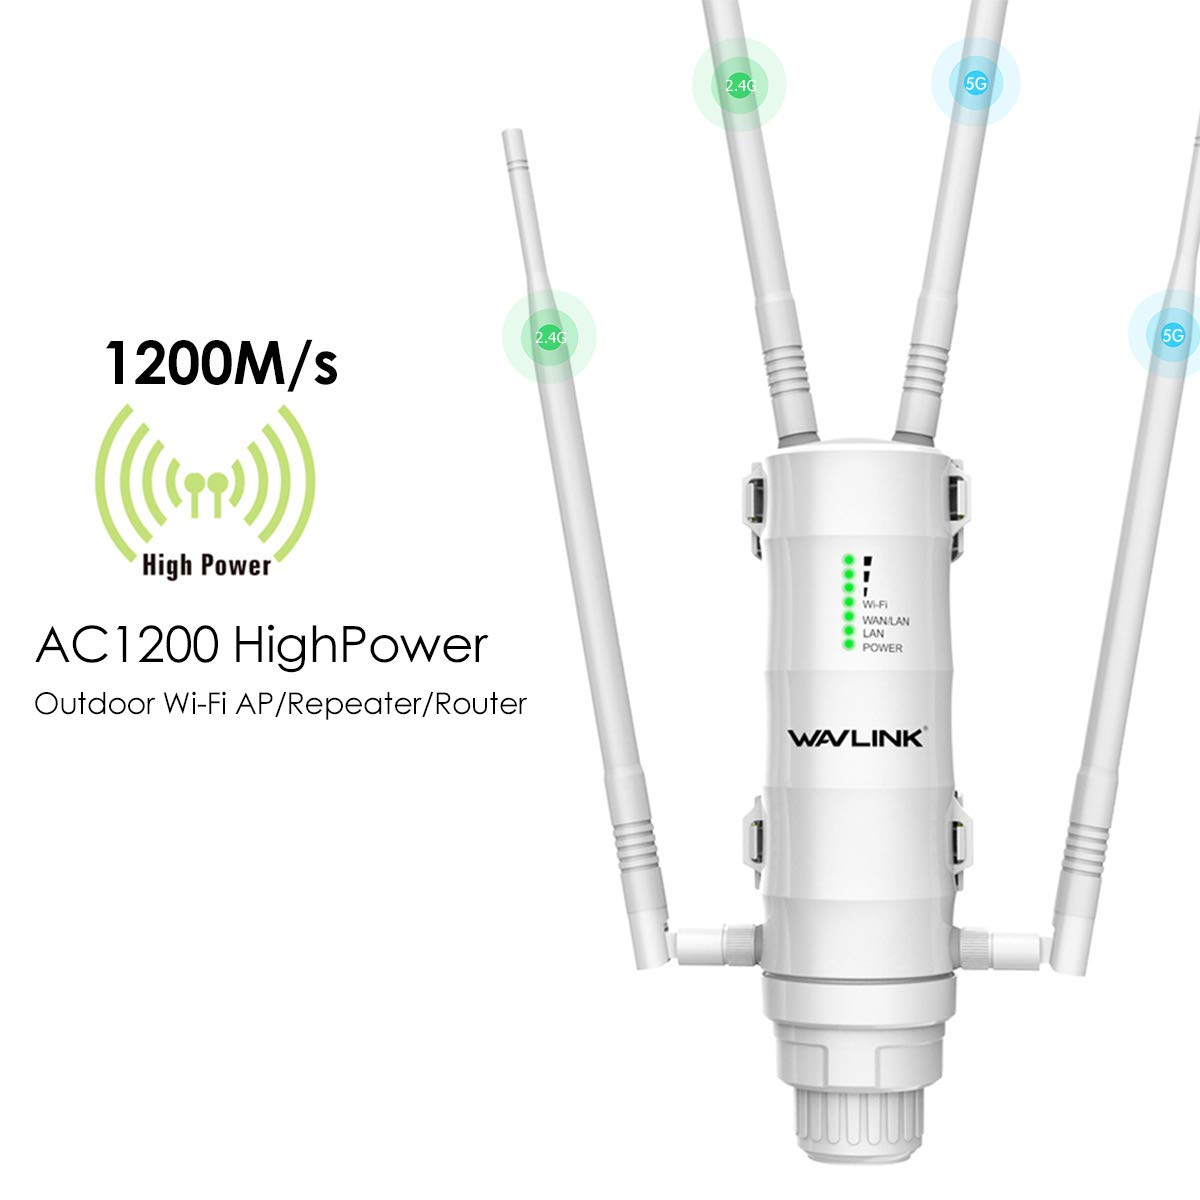 WAVLINK Aerial HD4 AC1200 High Power Long Range Outdoor Wireless Access Point Weatherproof Dual Band 2.4+5G 1200Mbps Wi-Fi AP/WiFi Extender/Router 3 in 1 with PoE, Gigabit Port by WAVLINK